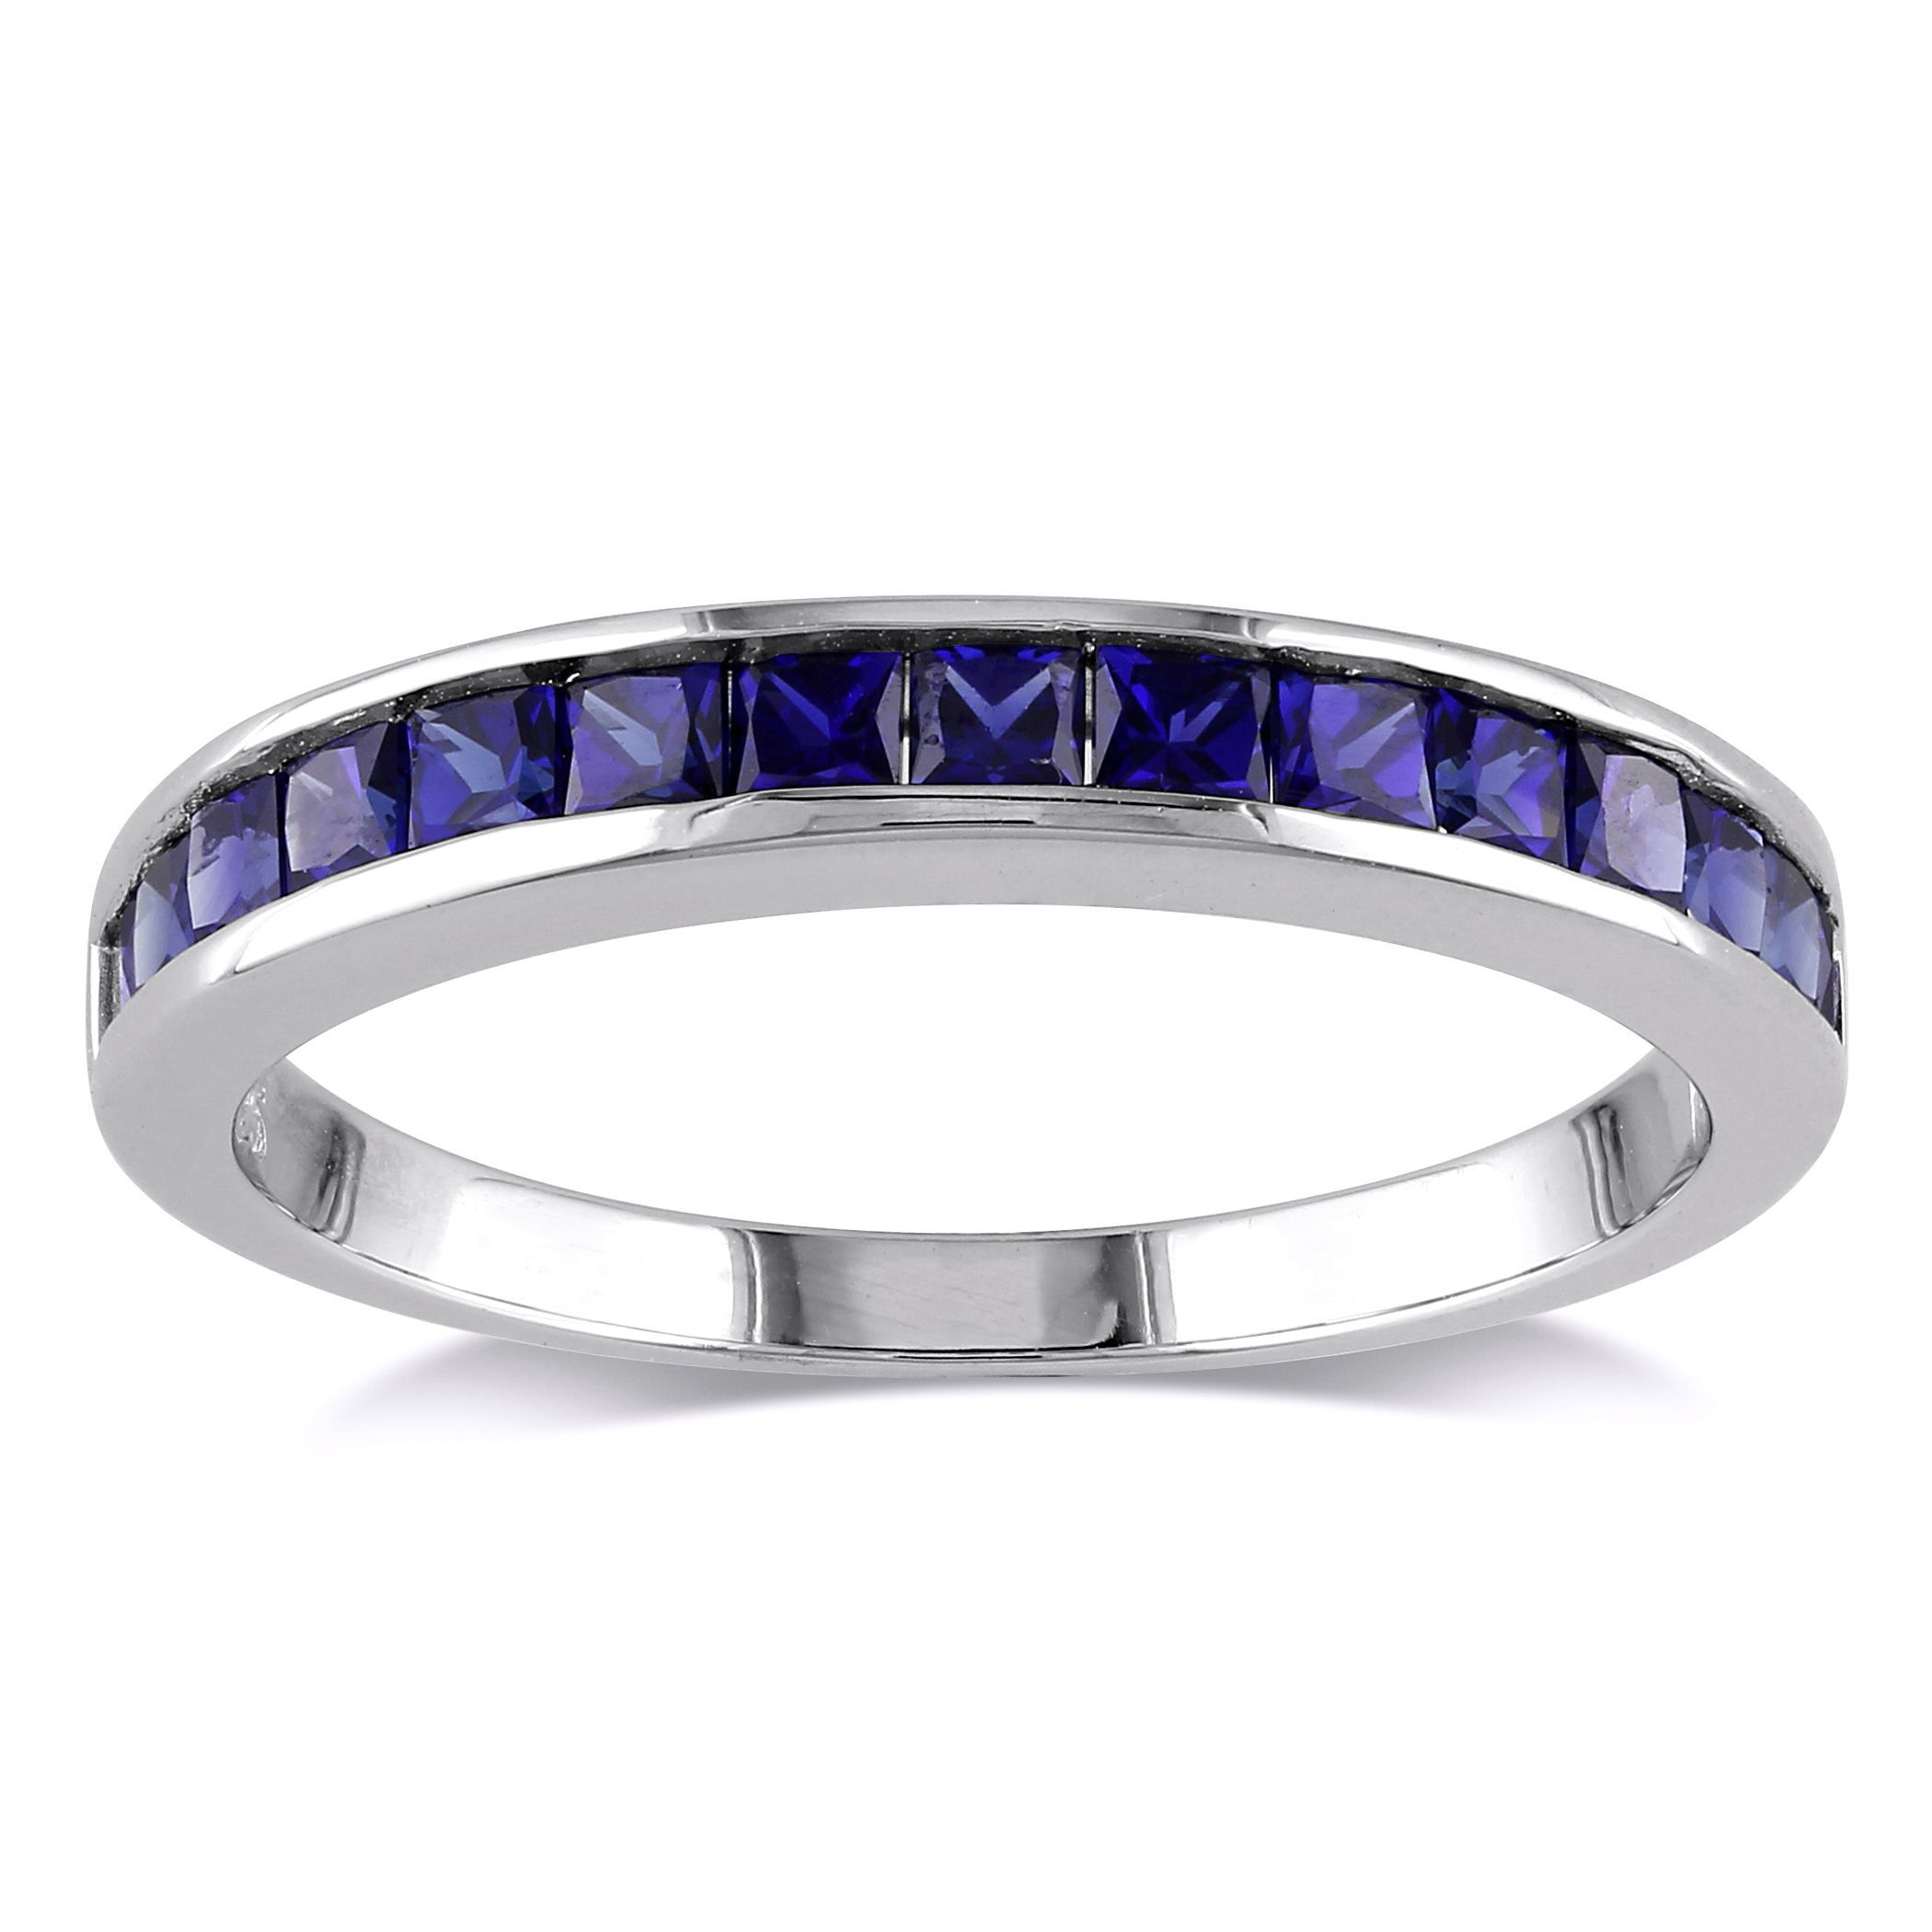 Pin By Janie Lane On Jewelry Sapphire Eternity Ring